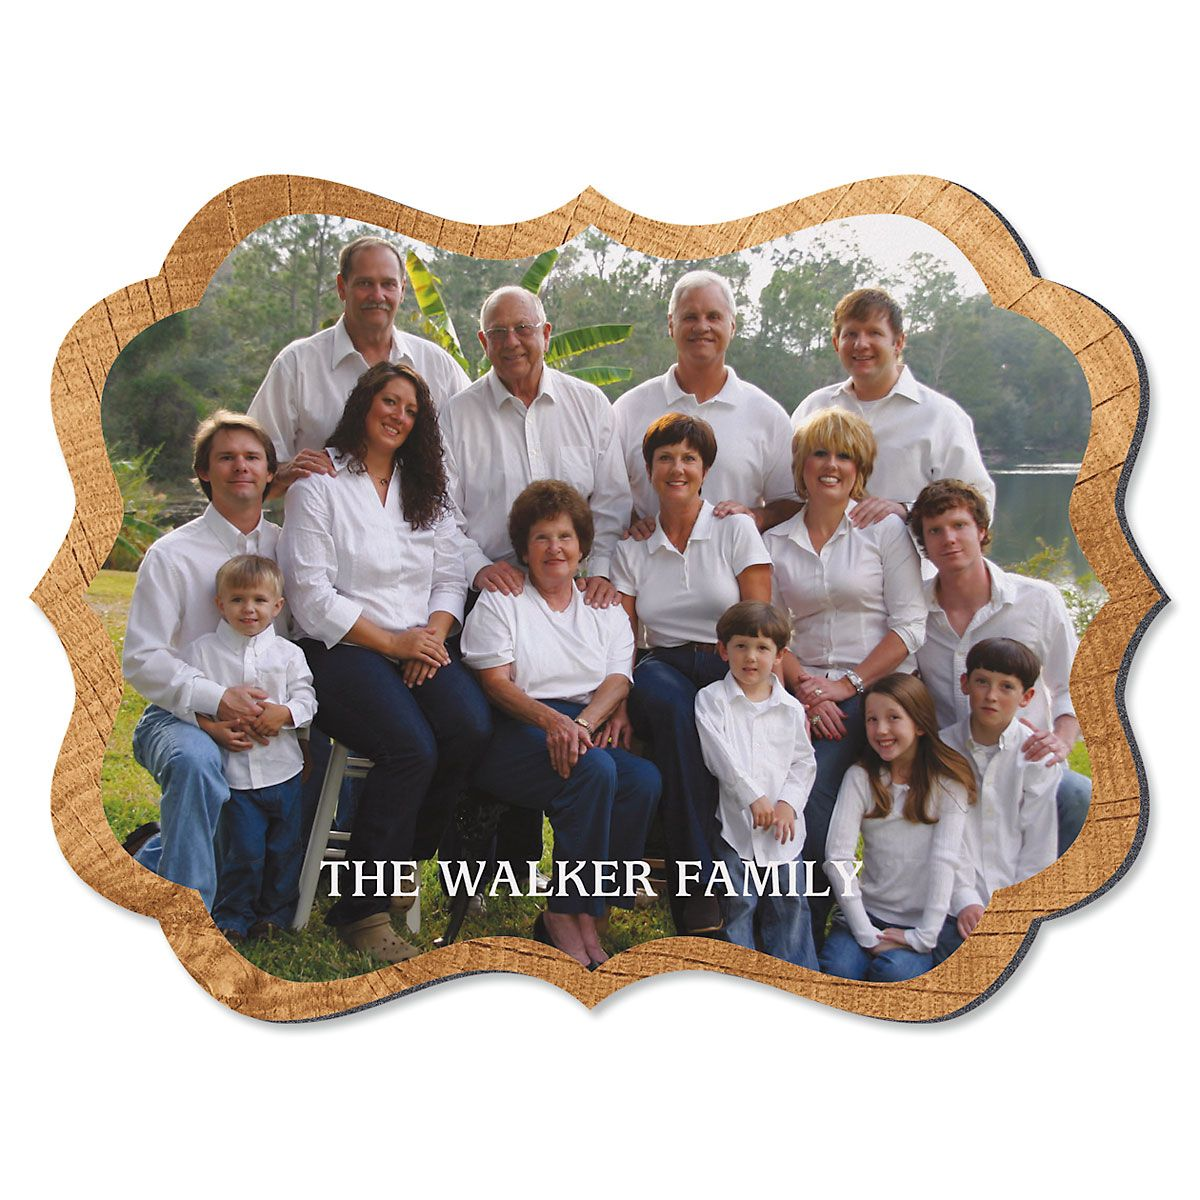 Midtone Wood Family Name Benelux Custom Photo Plaque